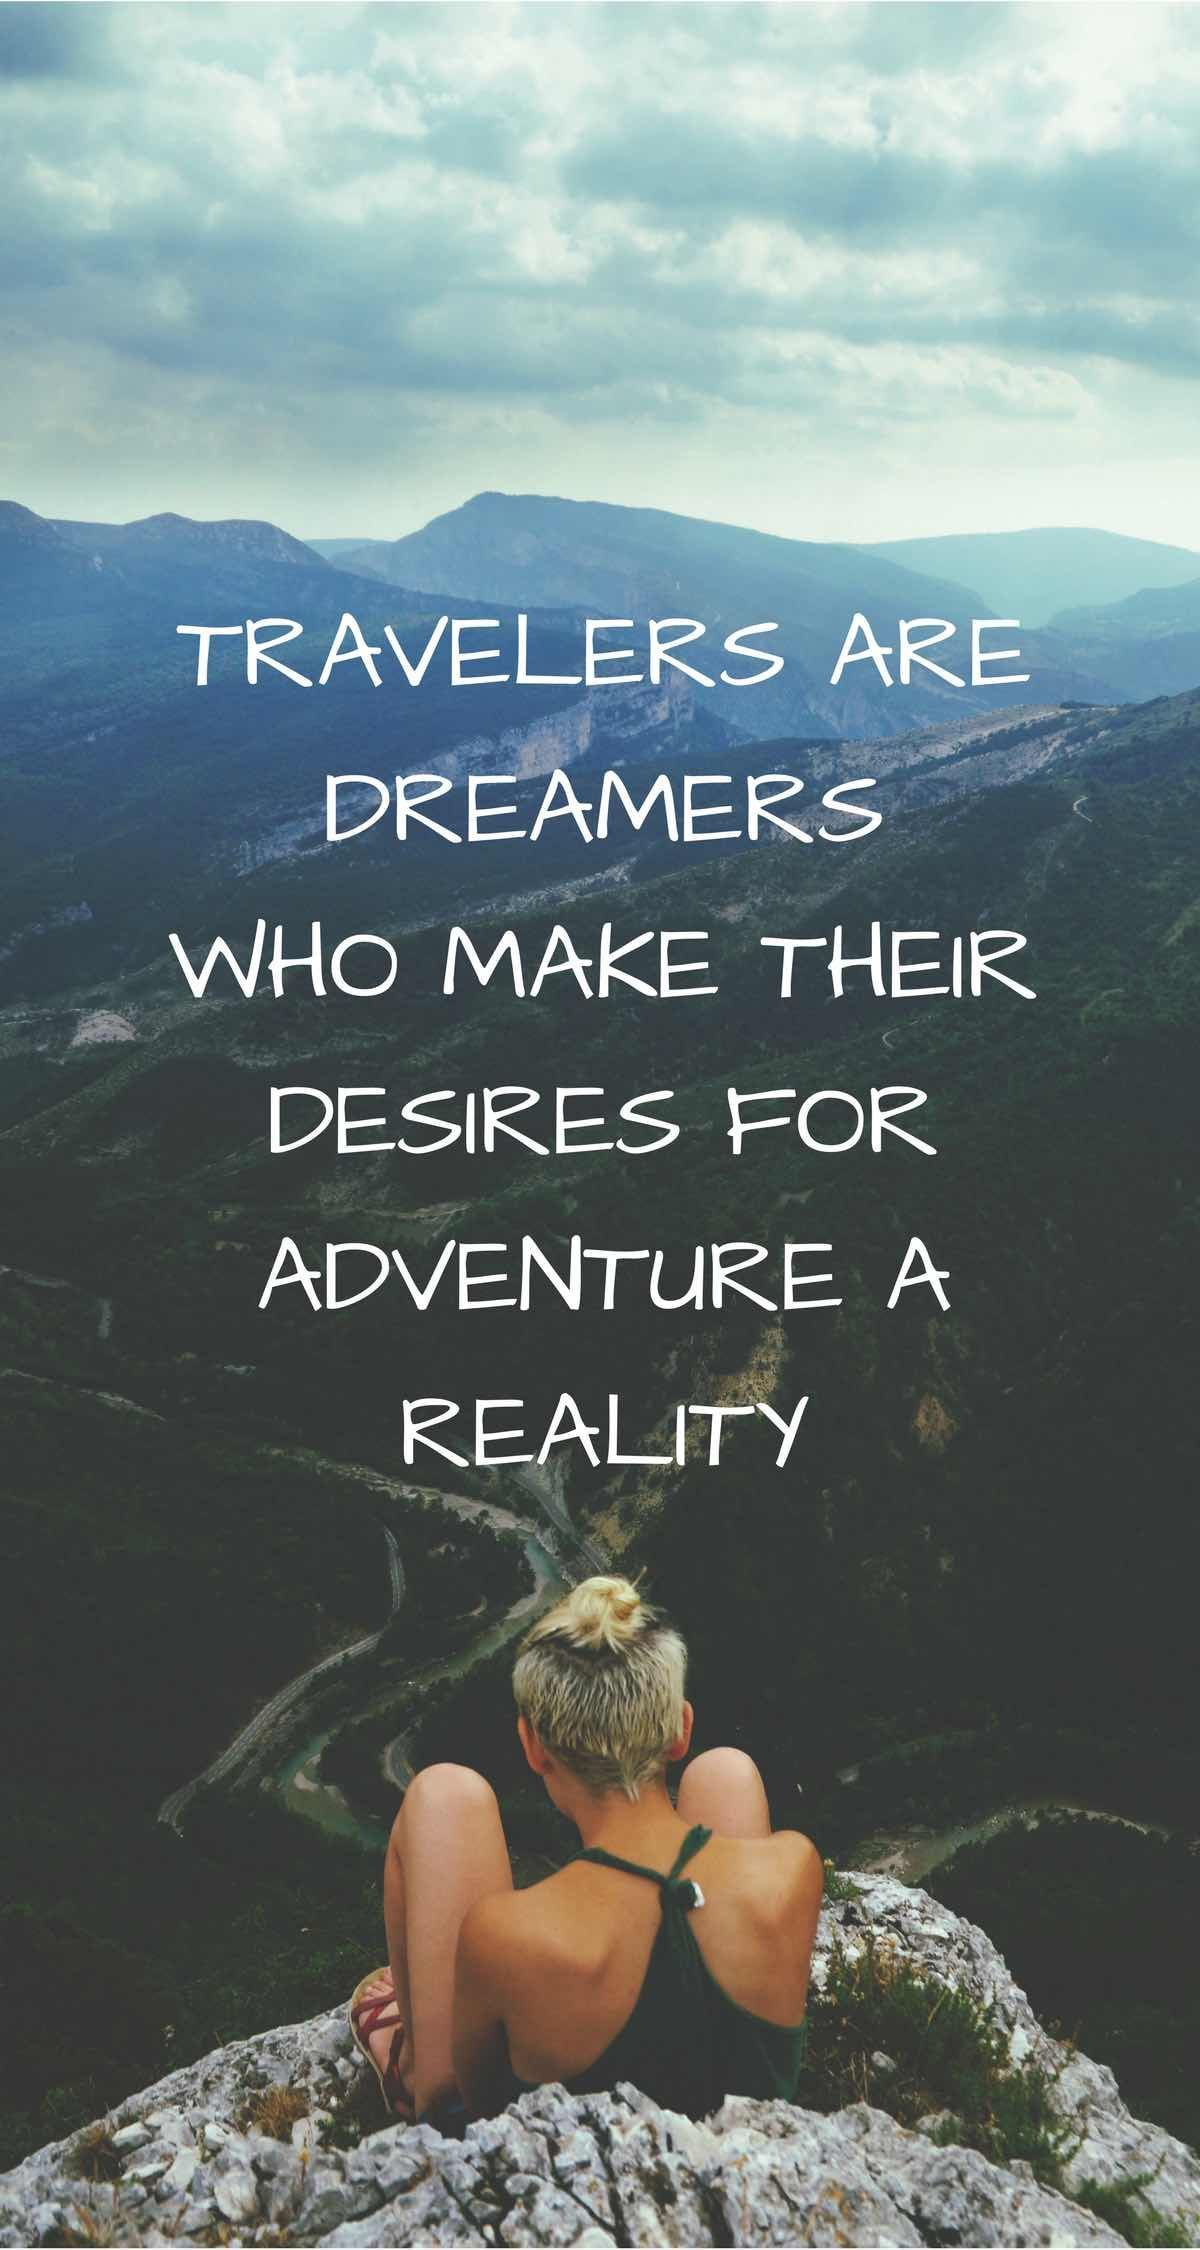 Quotes For Travelers Quotes About Travel Quotes About Adventure Adventuretravel Rejse Citater Rejse Tatoveringer Inspirerende